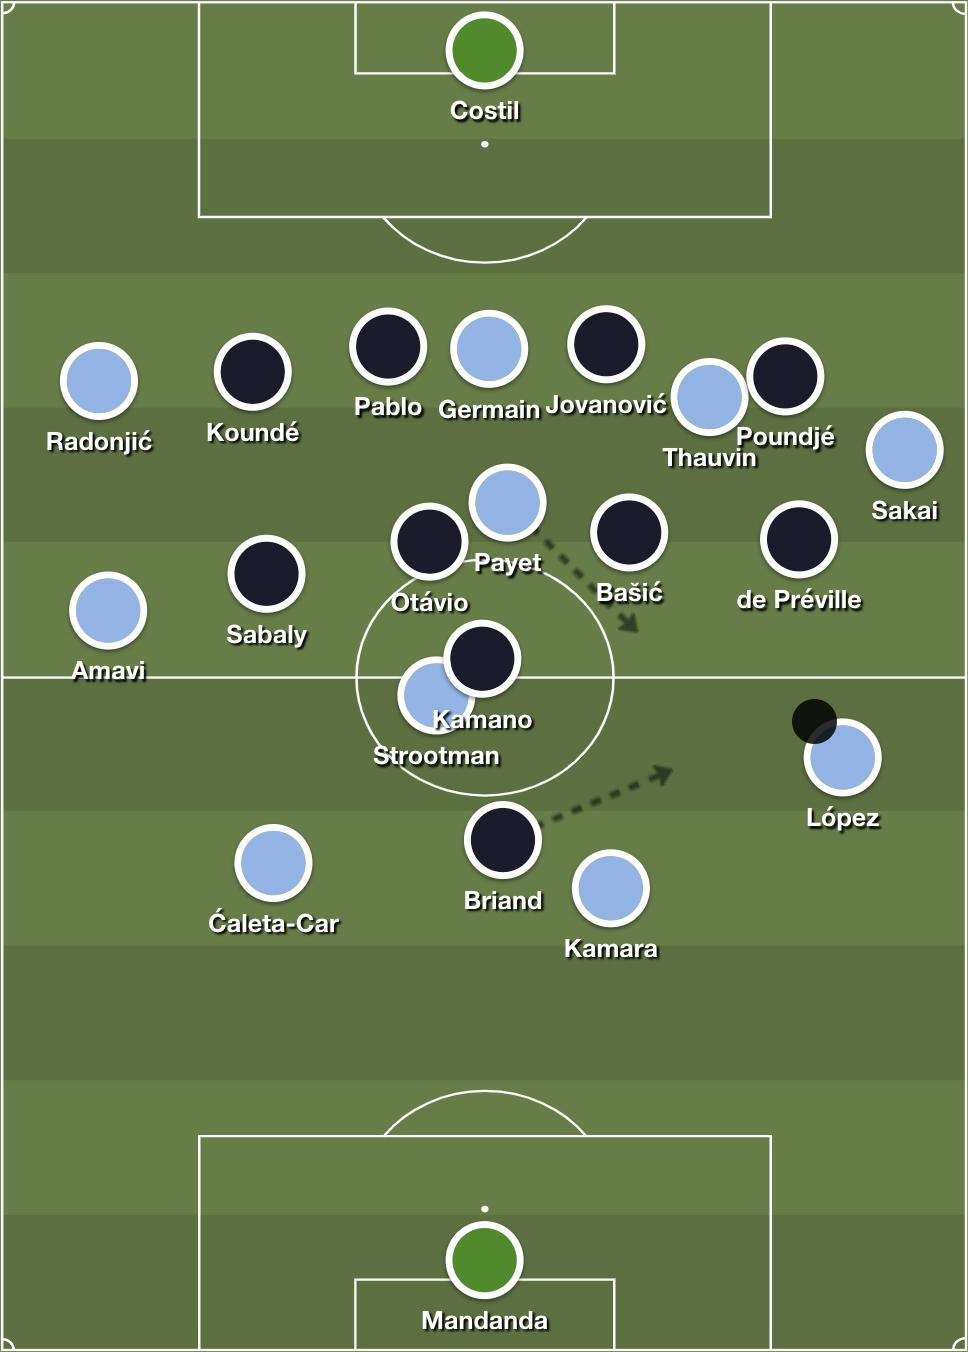 Bordeaux's 4-4-1-1 setup against Marseille's offensive shape